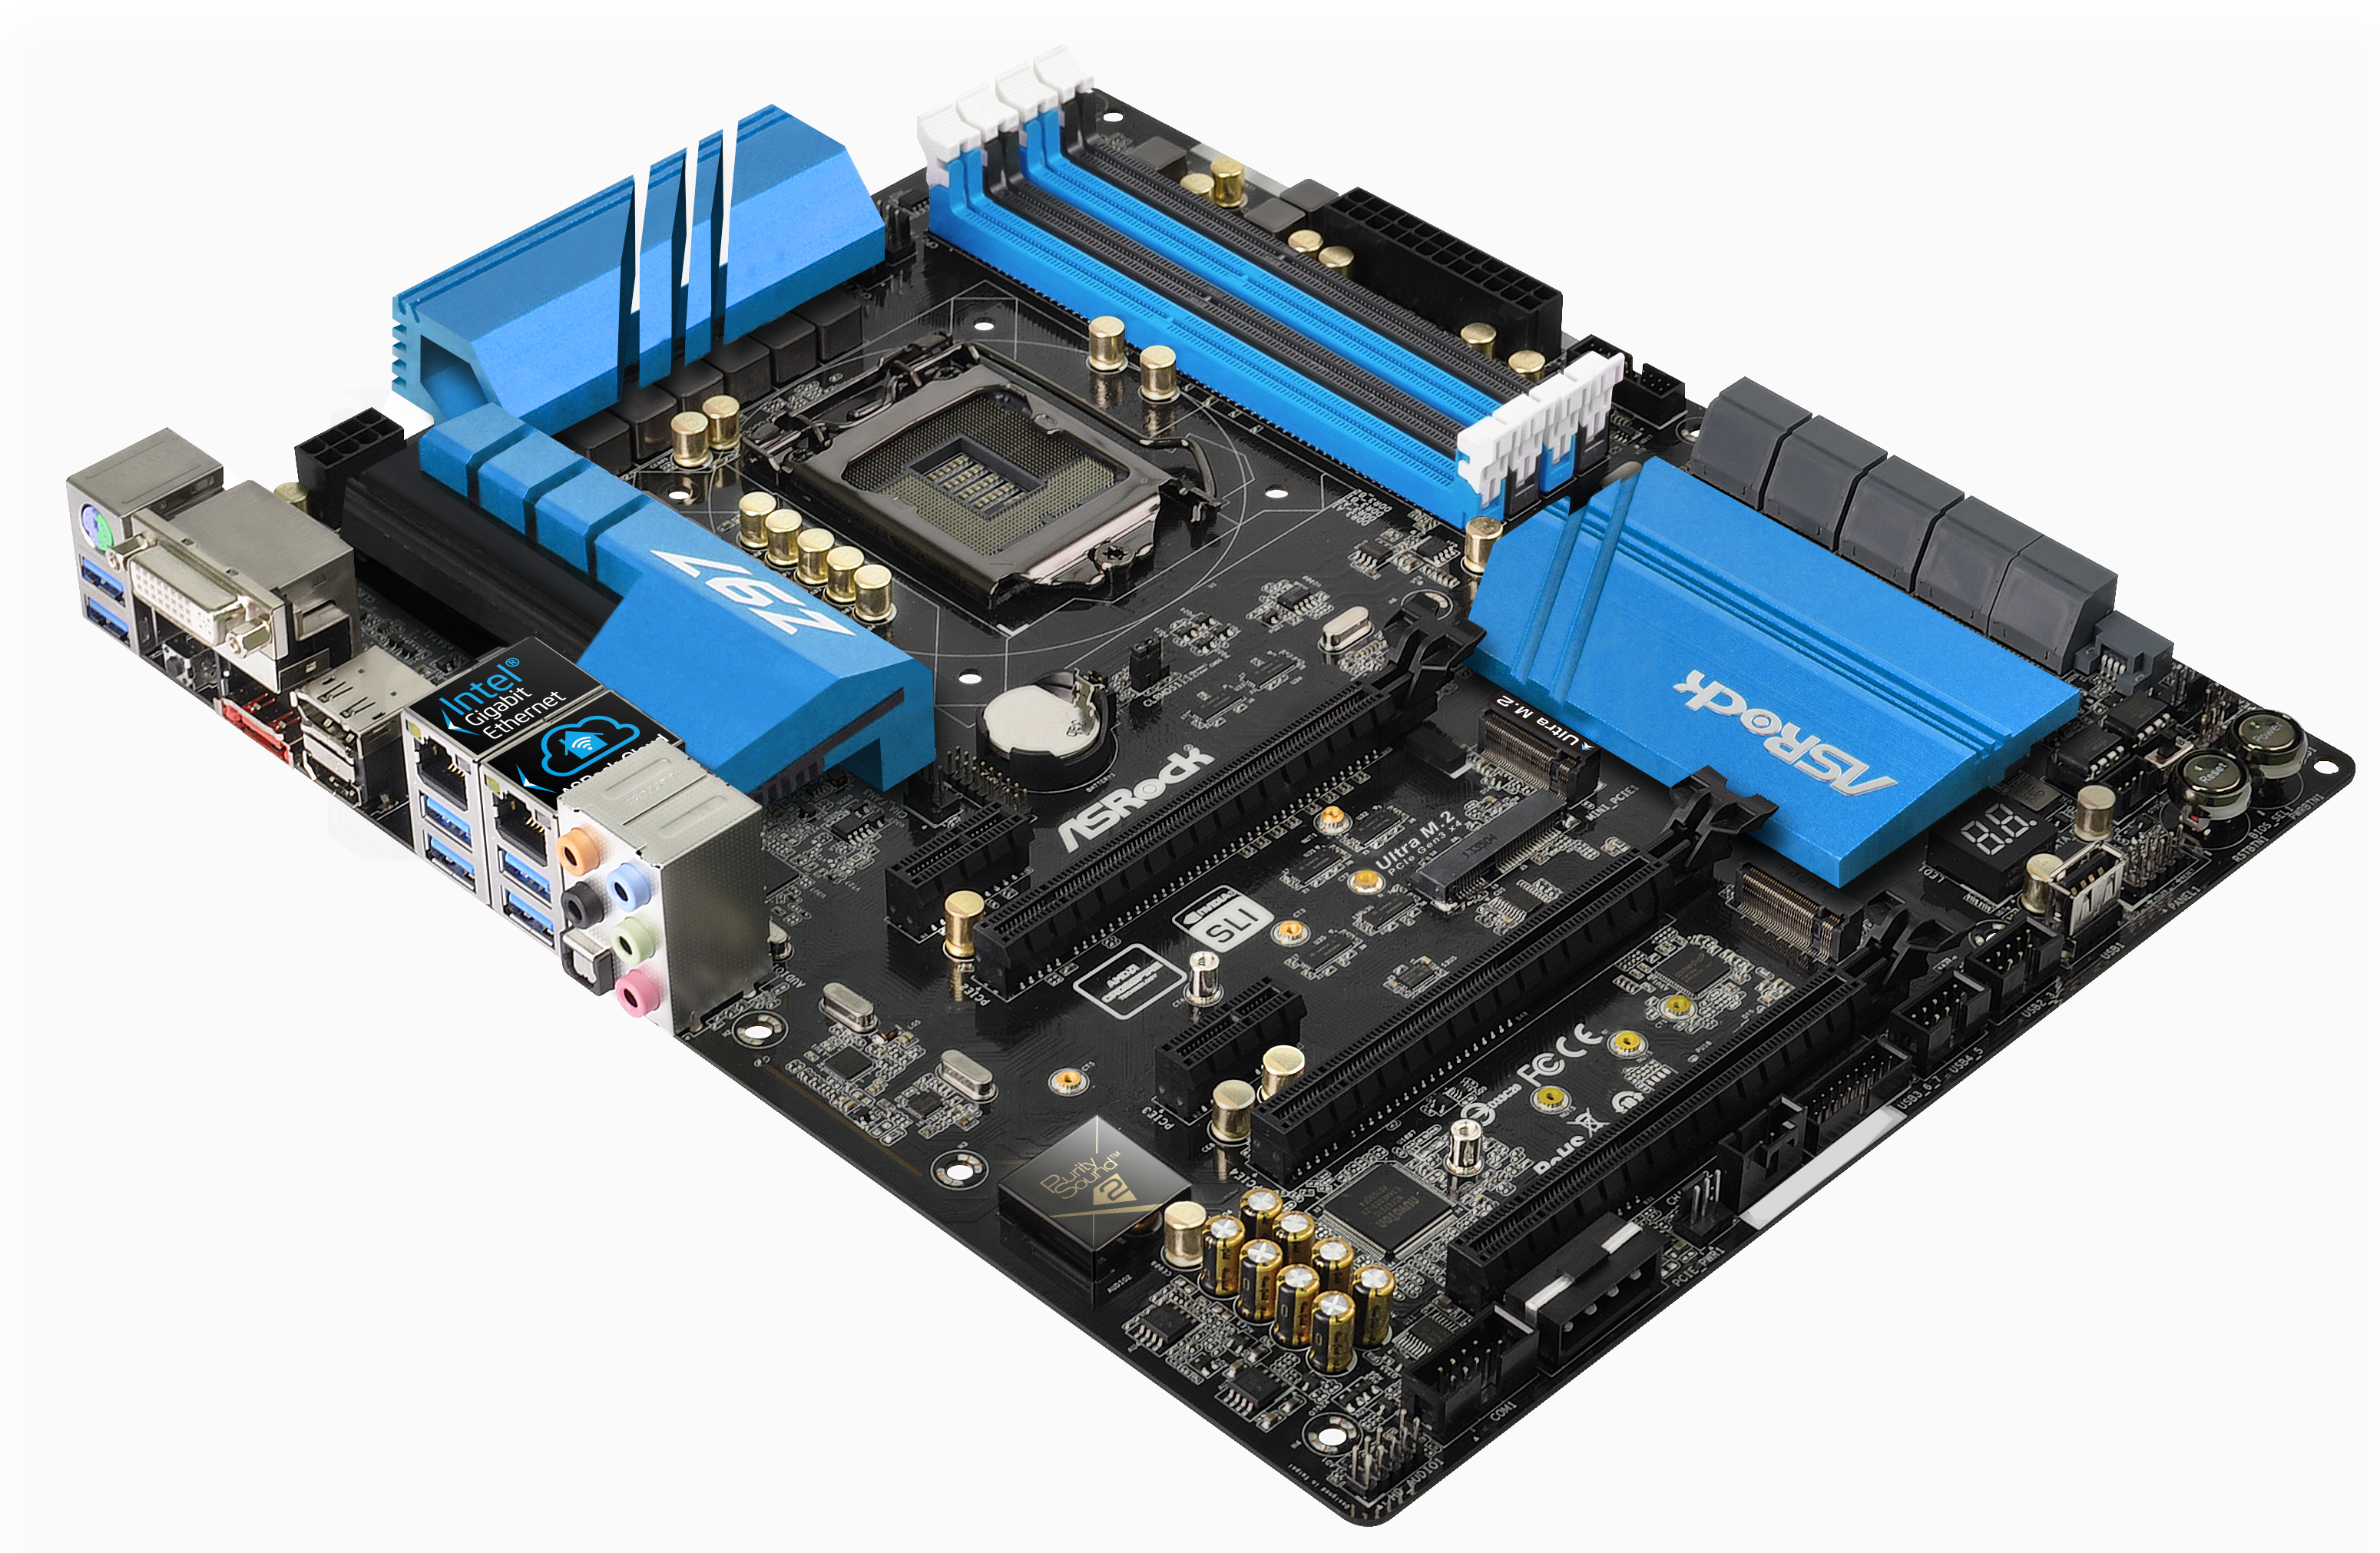 ASRock Z97 Extreme6 Review: Ultra M 2 x4 Tested With XP941